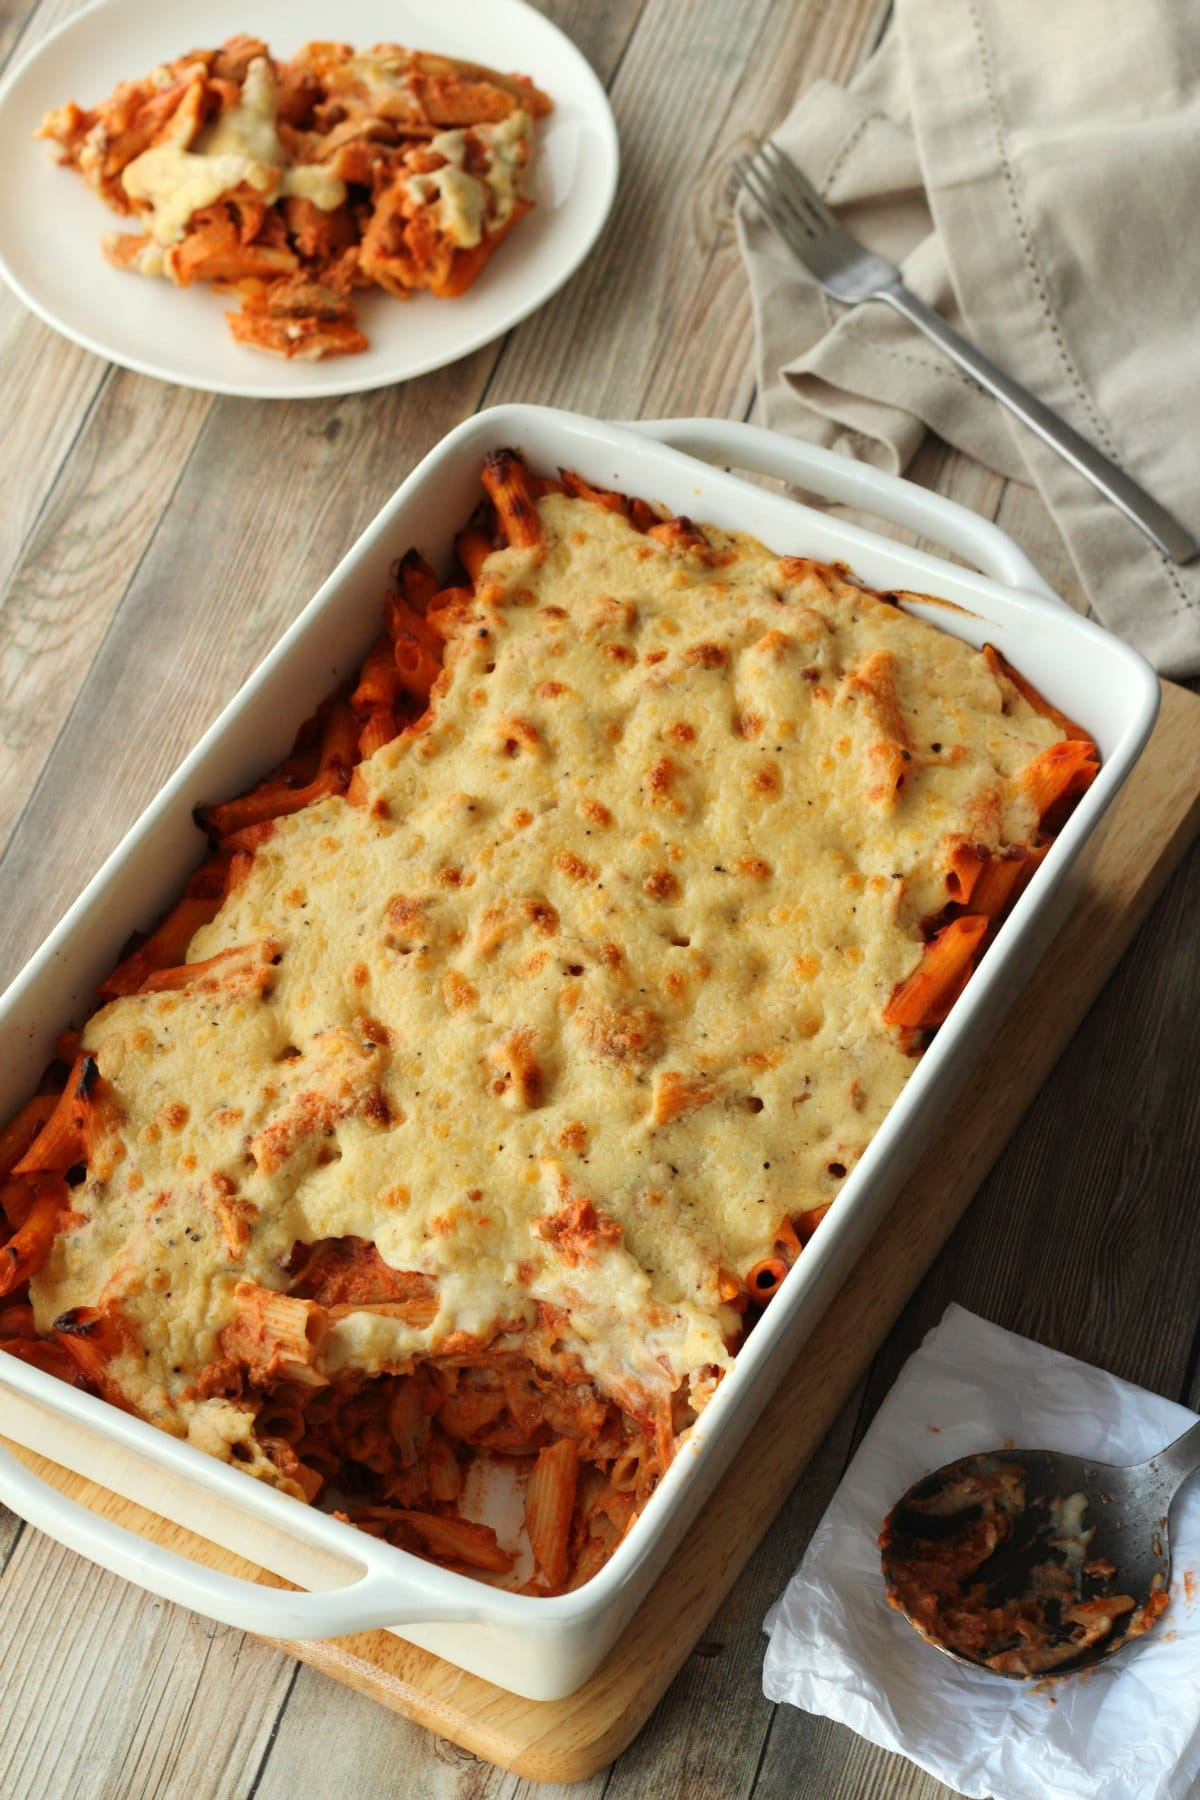 Vegan Pasta Bake in a white oven dish with a serving dished up on a white side plate.